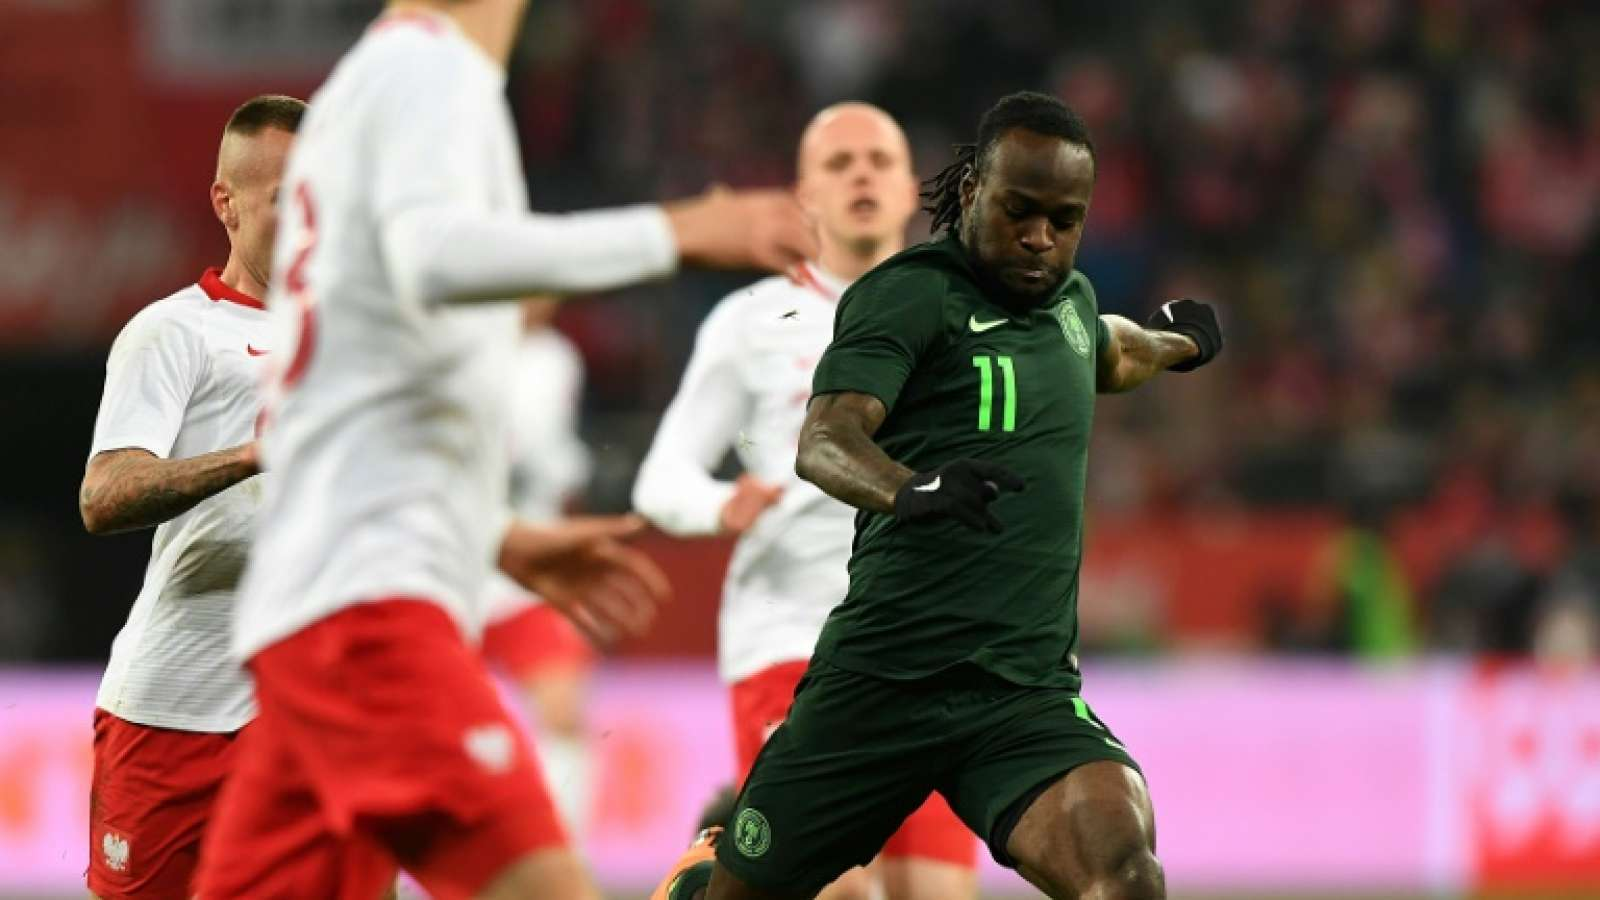 Stephen Eze disappointed after omission from Nigeria World Cup squad